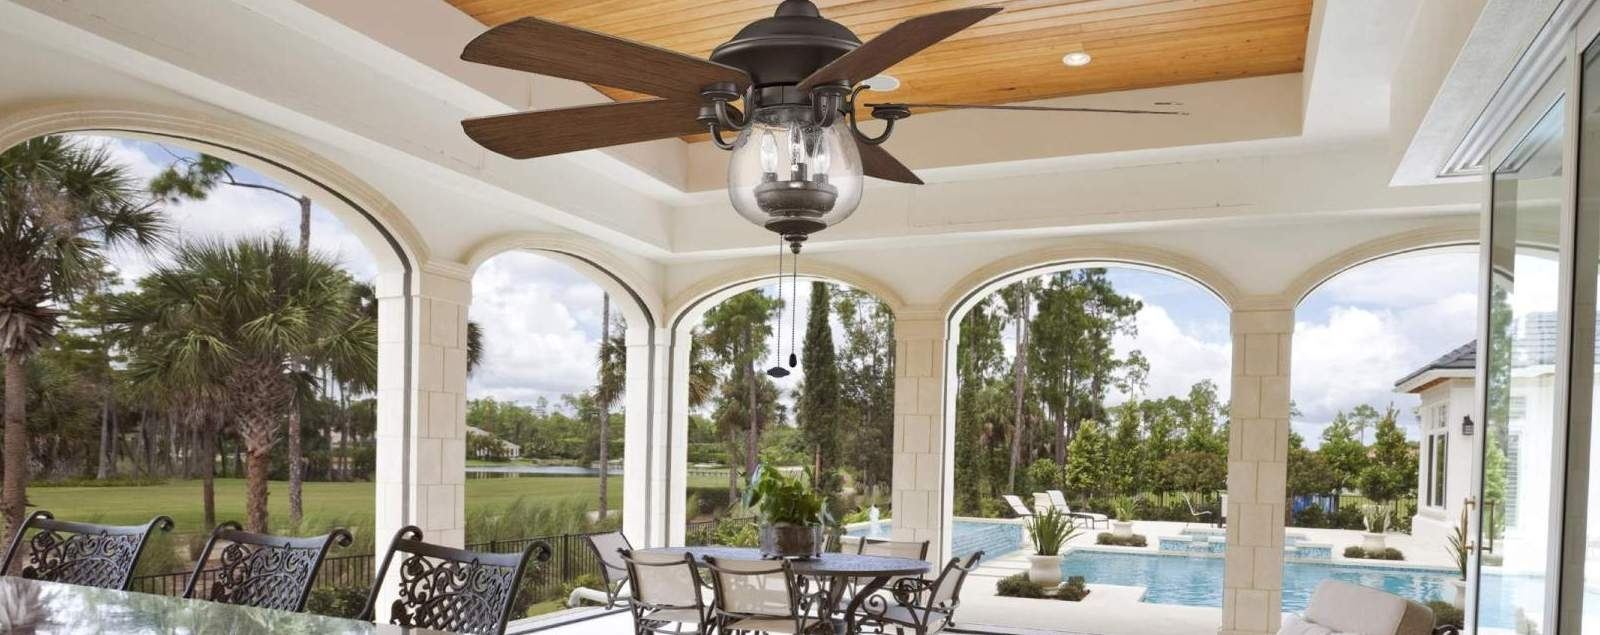 Most Recently Released Outdoor Ceiling Fans – Shop Wet, Dry, And Damp Rated Outdoor Fans Regarding Outdoor Ceiling Fans For Screened Porches (Gallery 2 of 20)